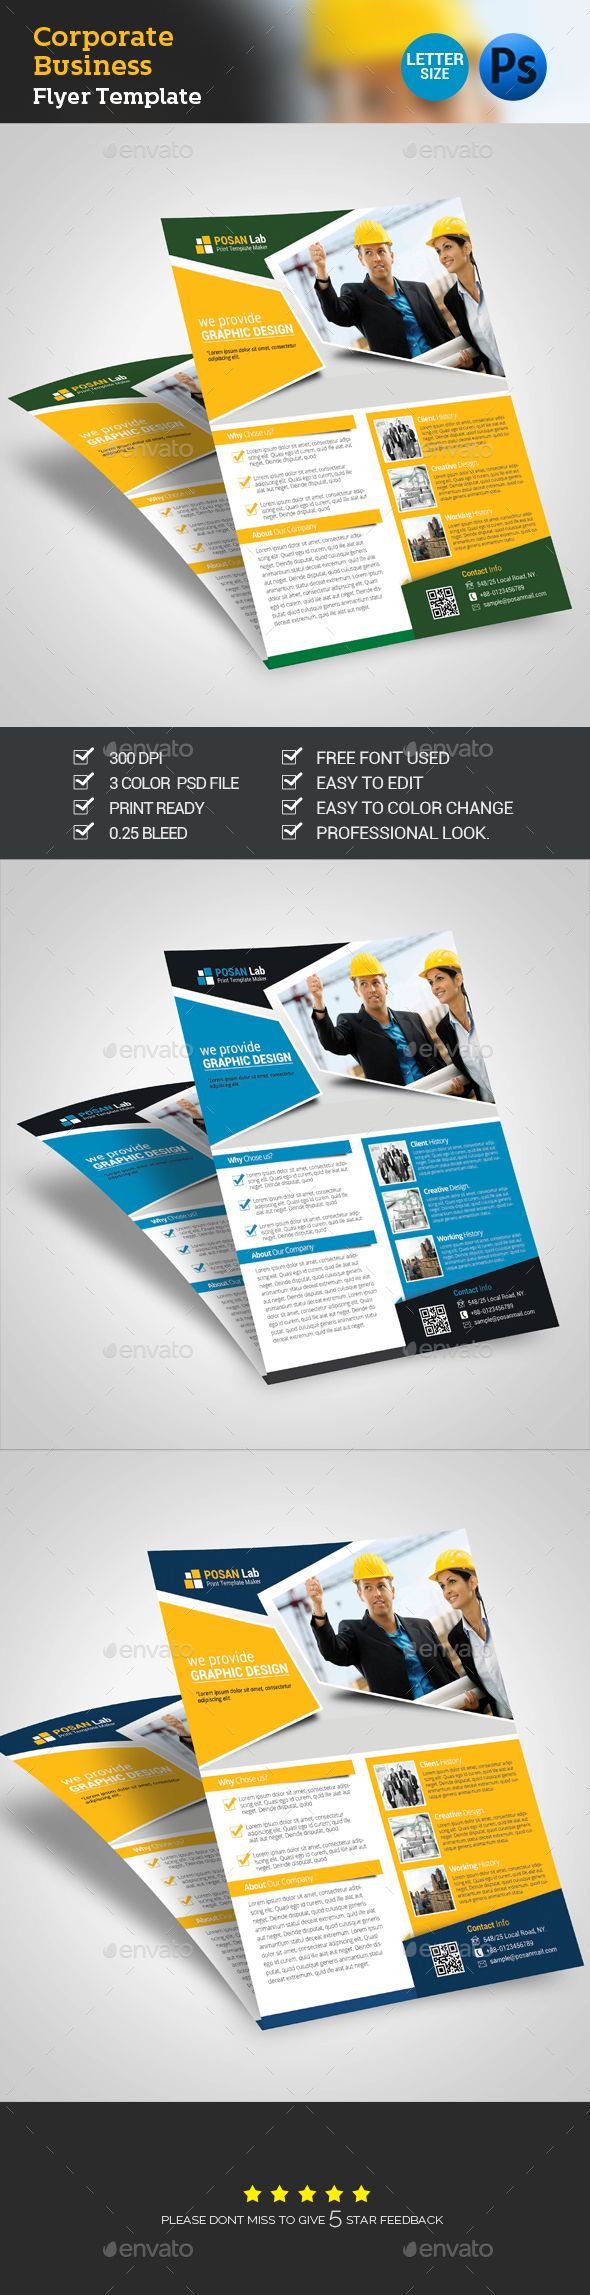 Free Sample Flyers Flyer  Cleaning Companies Edit Text And Flyer Printing